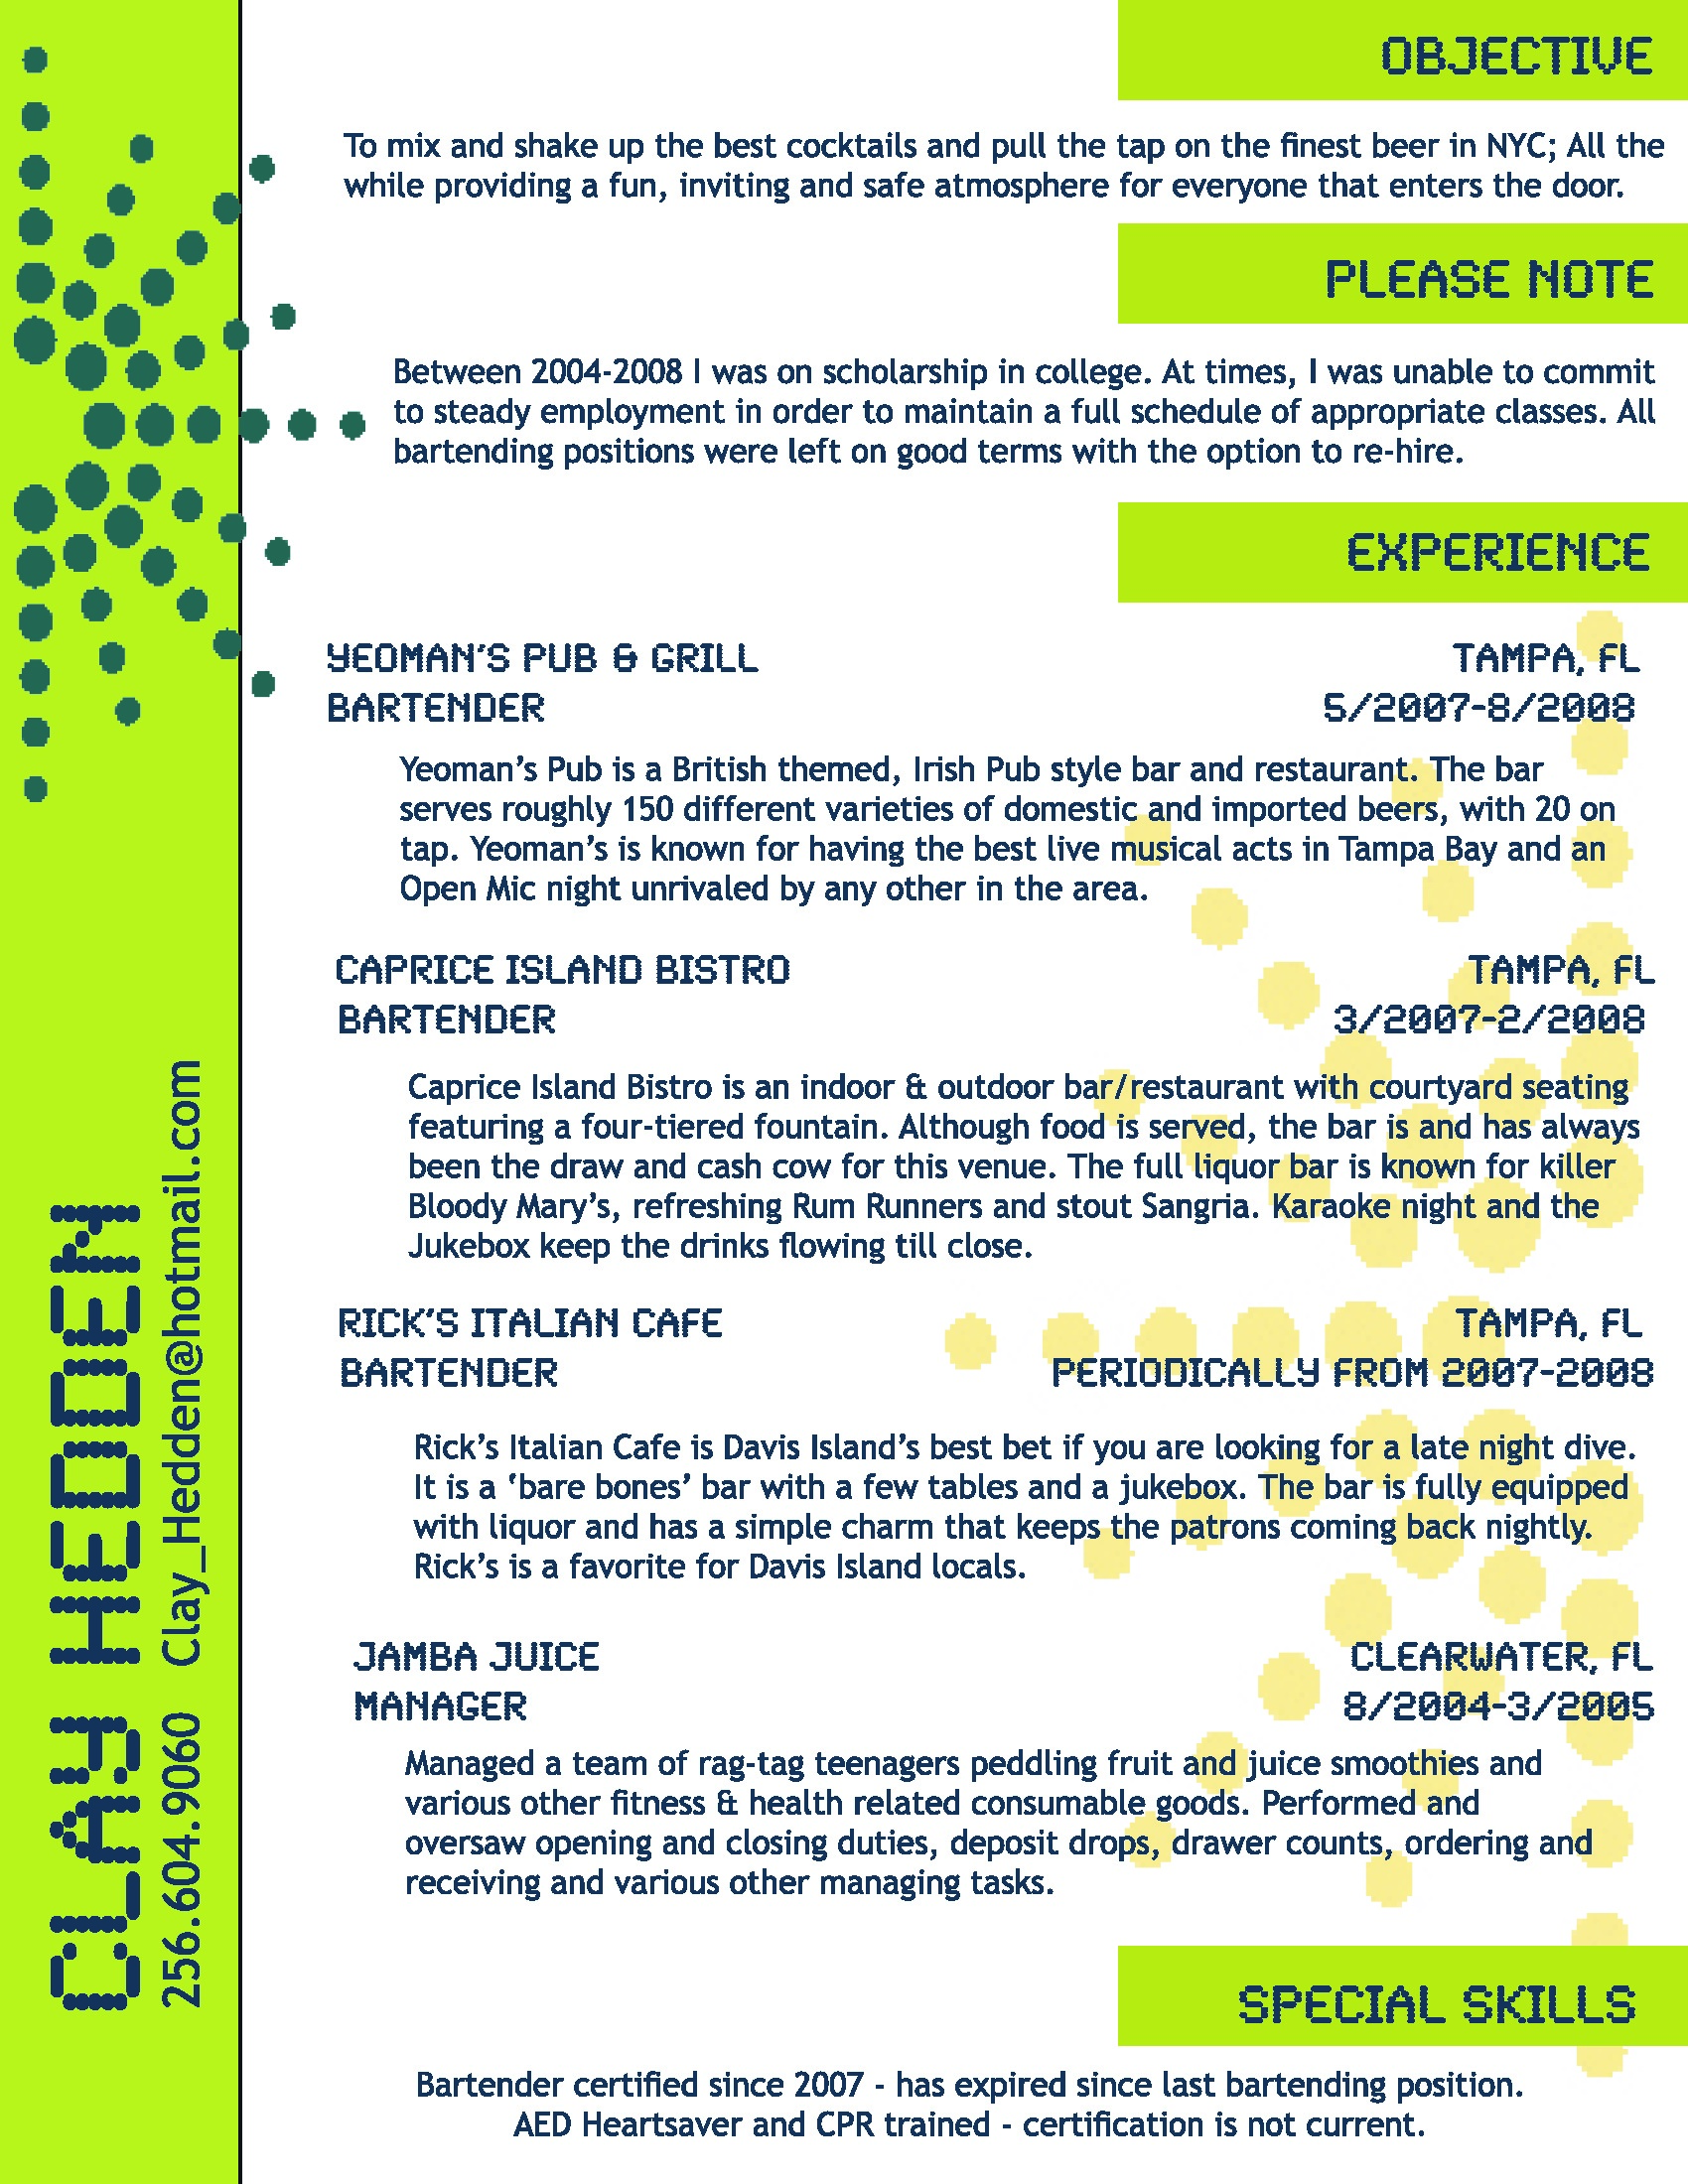 Bartender Resume Objective Samples Bartending Resume Clay Hedden